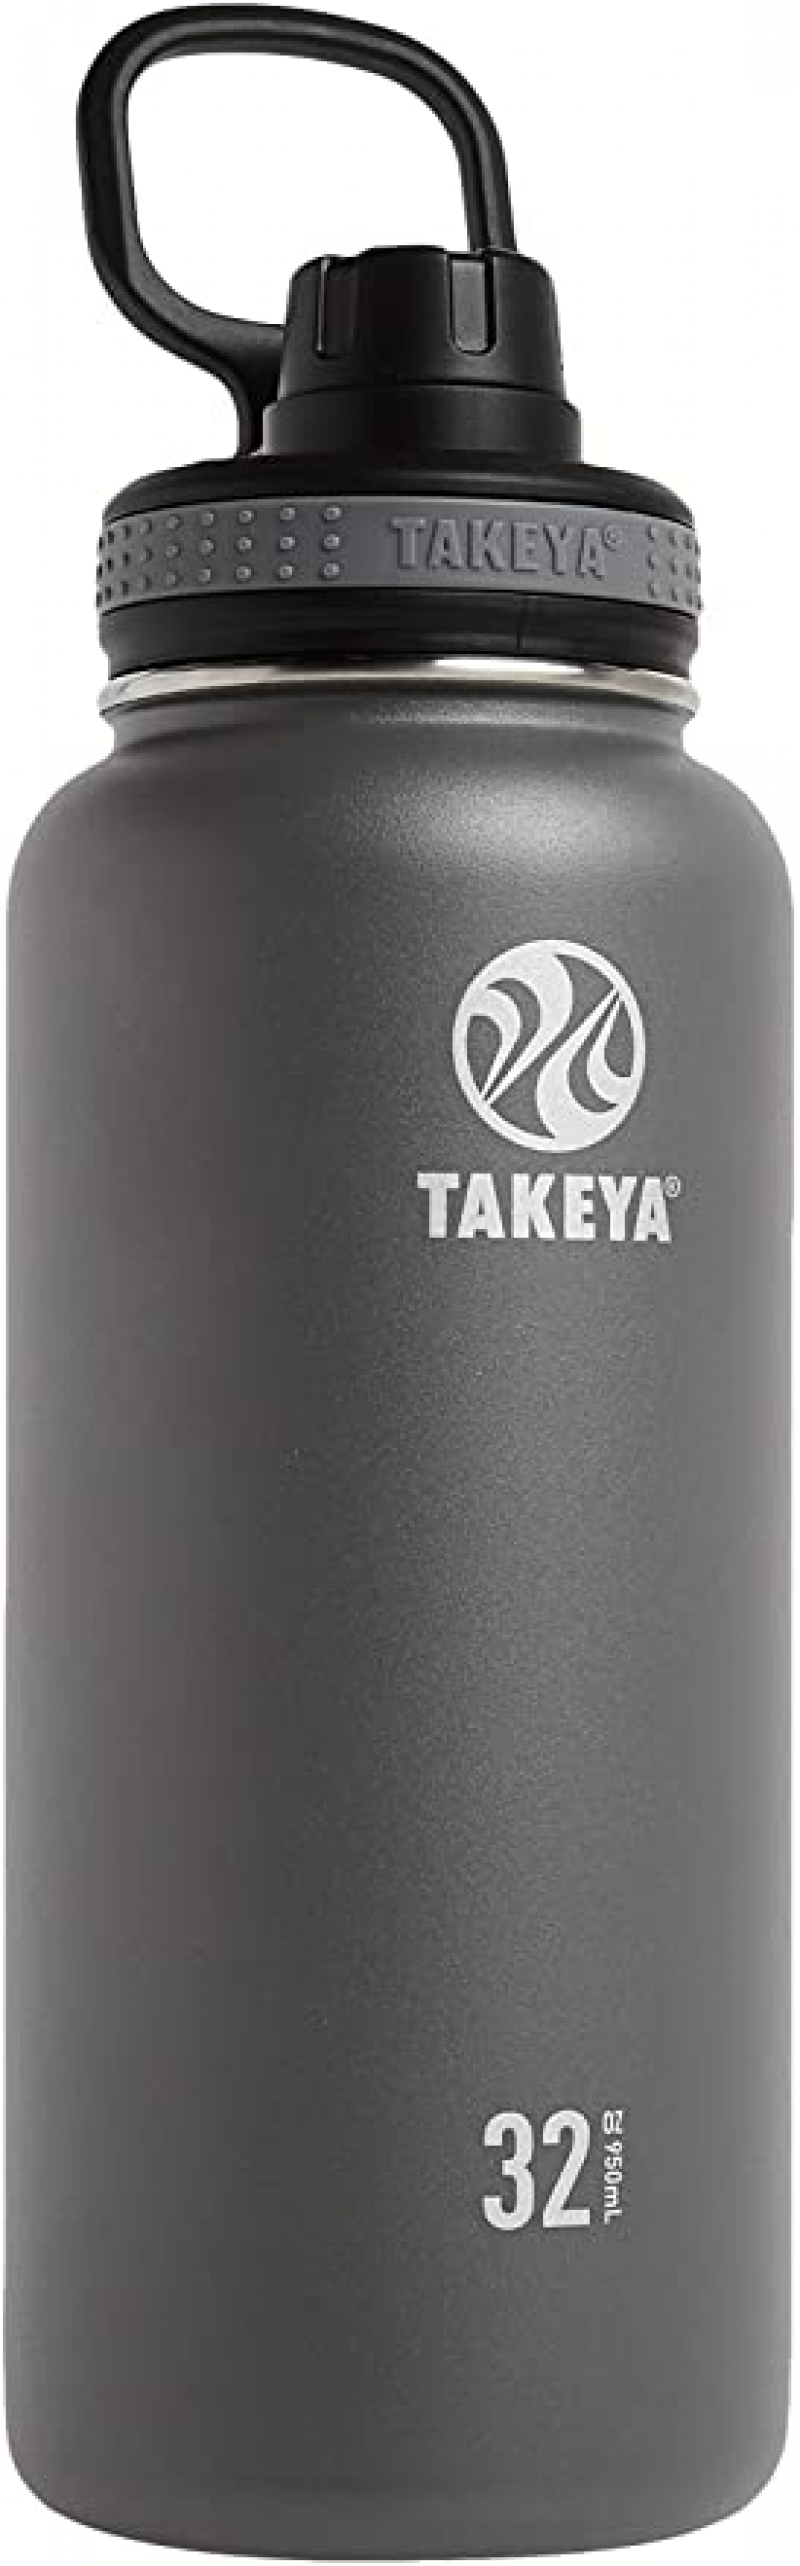 ihocon: Takeya Originals Vacuum-Insulated Stainless-Steel Water Bottle, 32oz 不銹鋼保溫水瓶